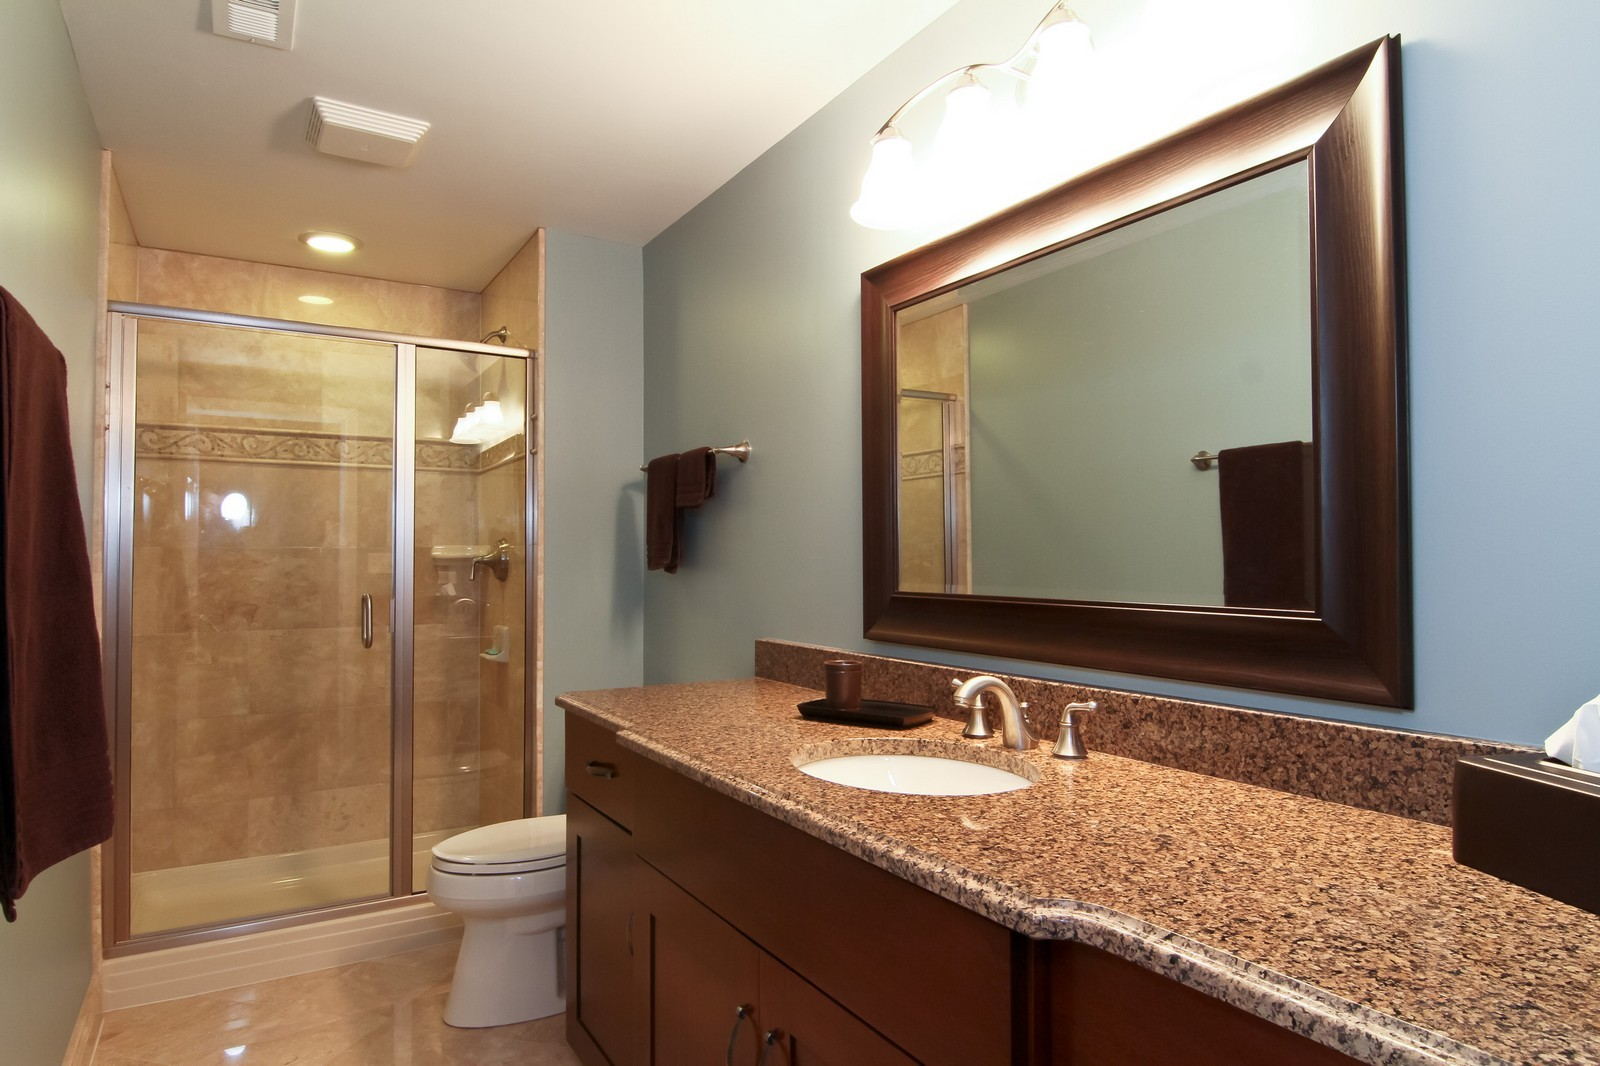 Real Estate Photography - 4915 Stanley Ave, Downers Grove, IL, 60515 - Bathroom